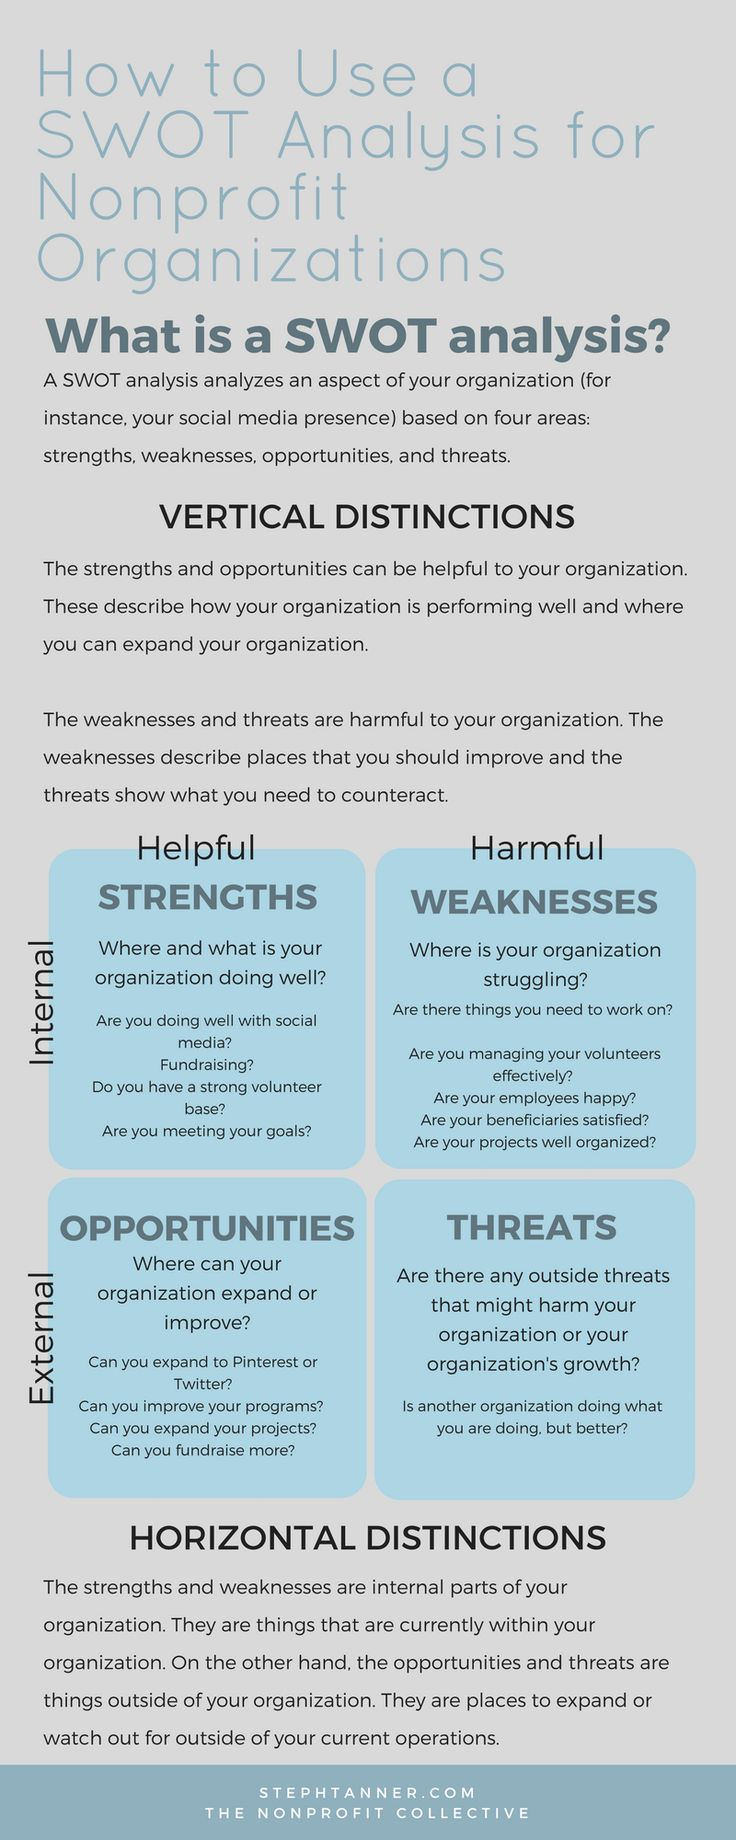 best ideas about swot analysis strategic a swot analysis analyzes an aspect of your organization based on four areas strengths